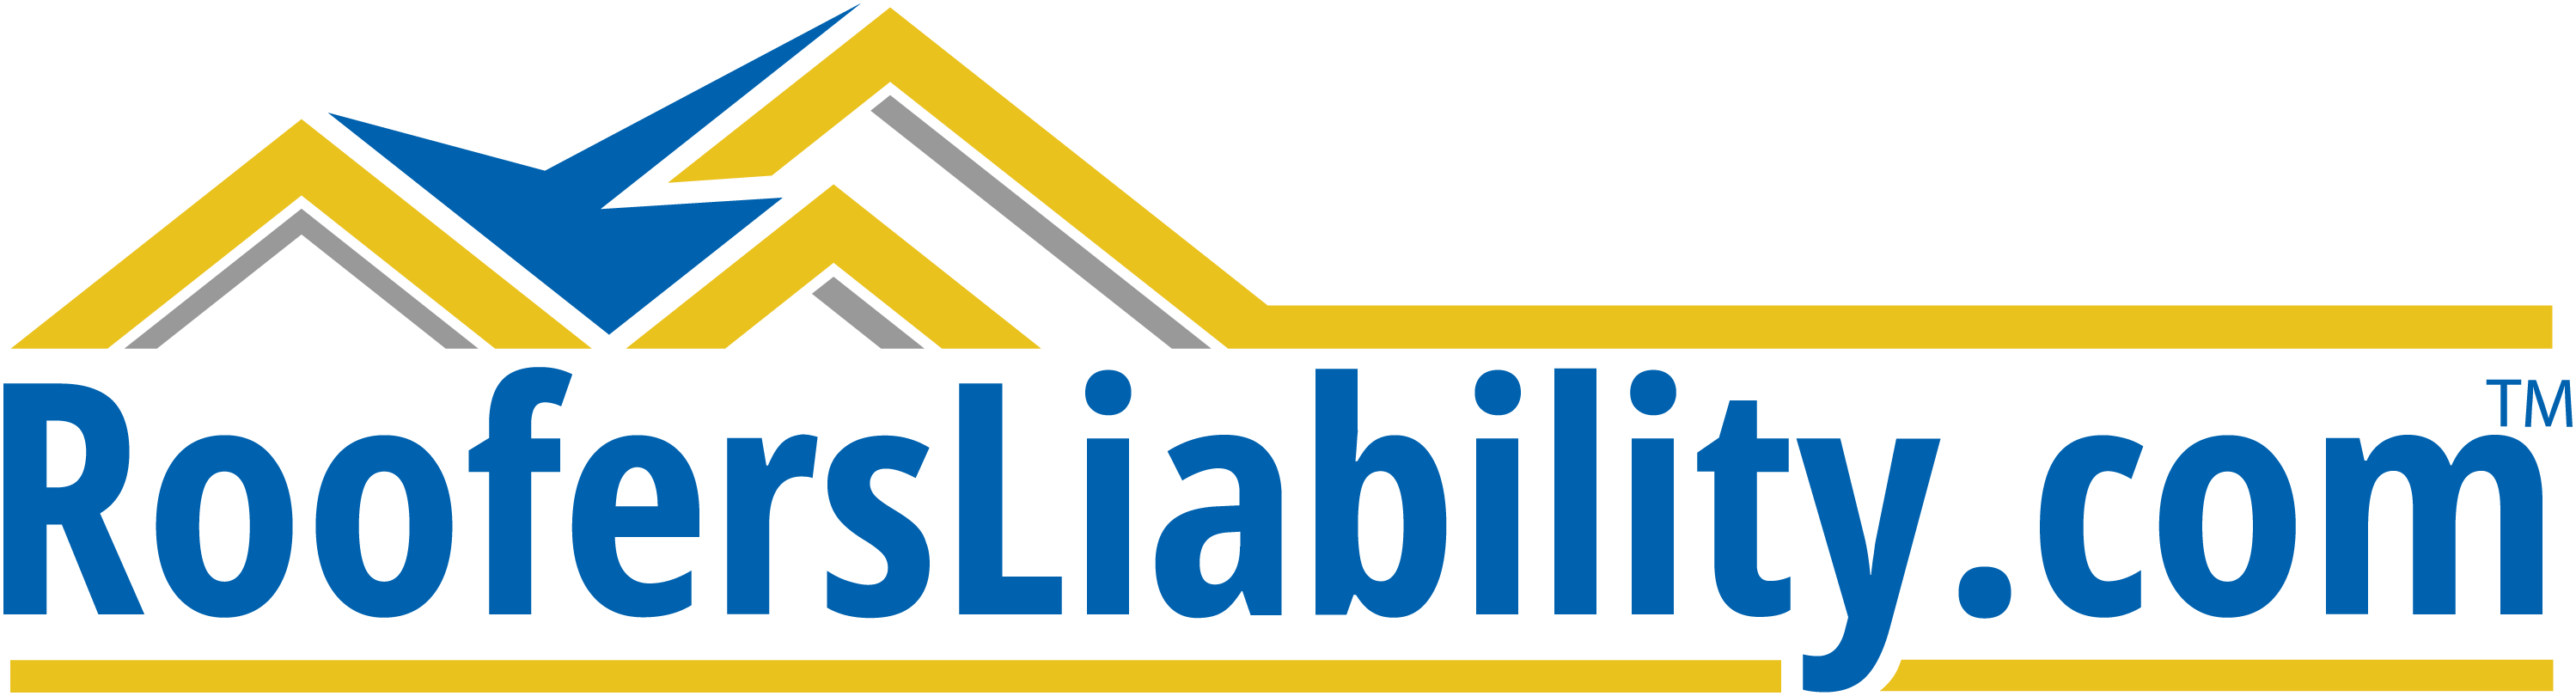 Roofers Liability